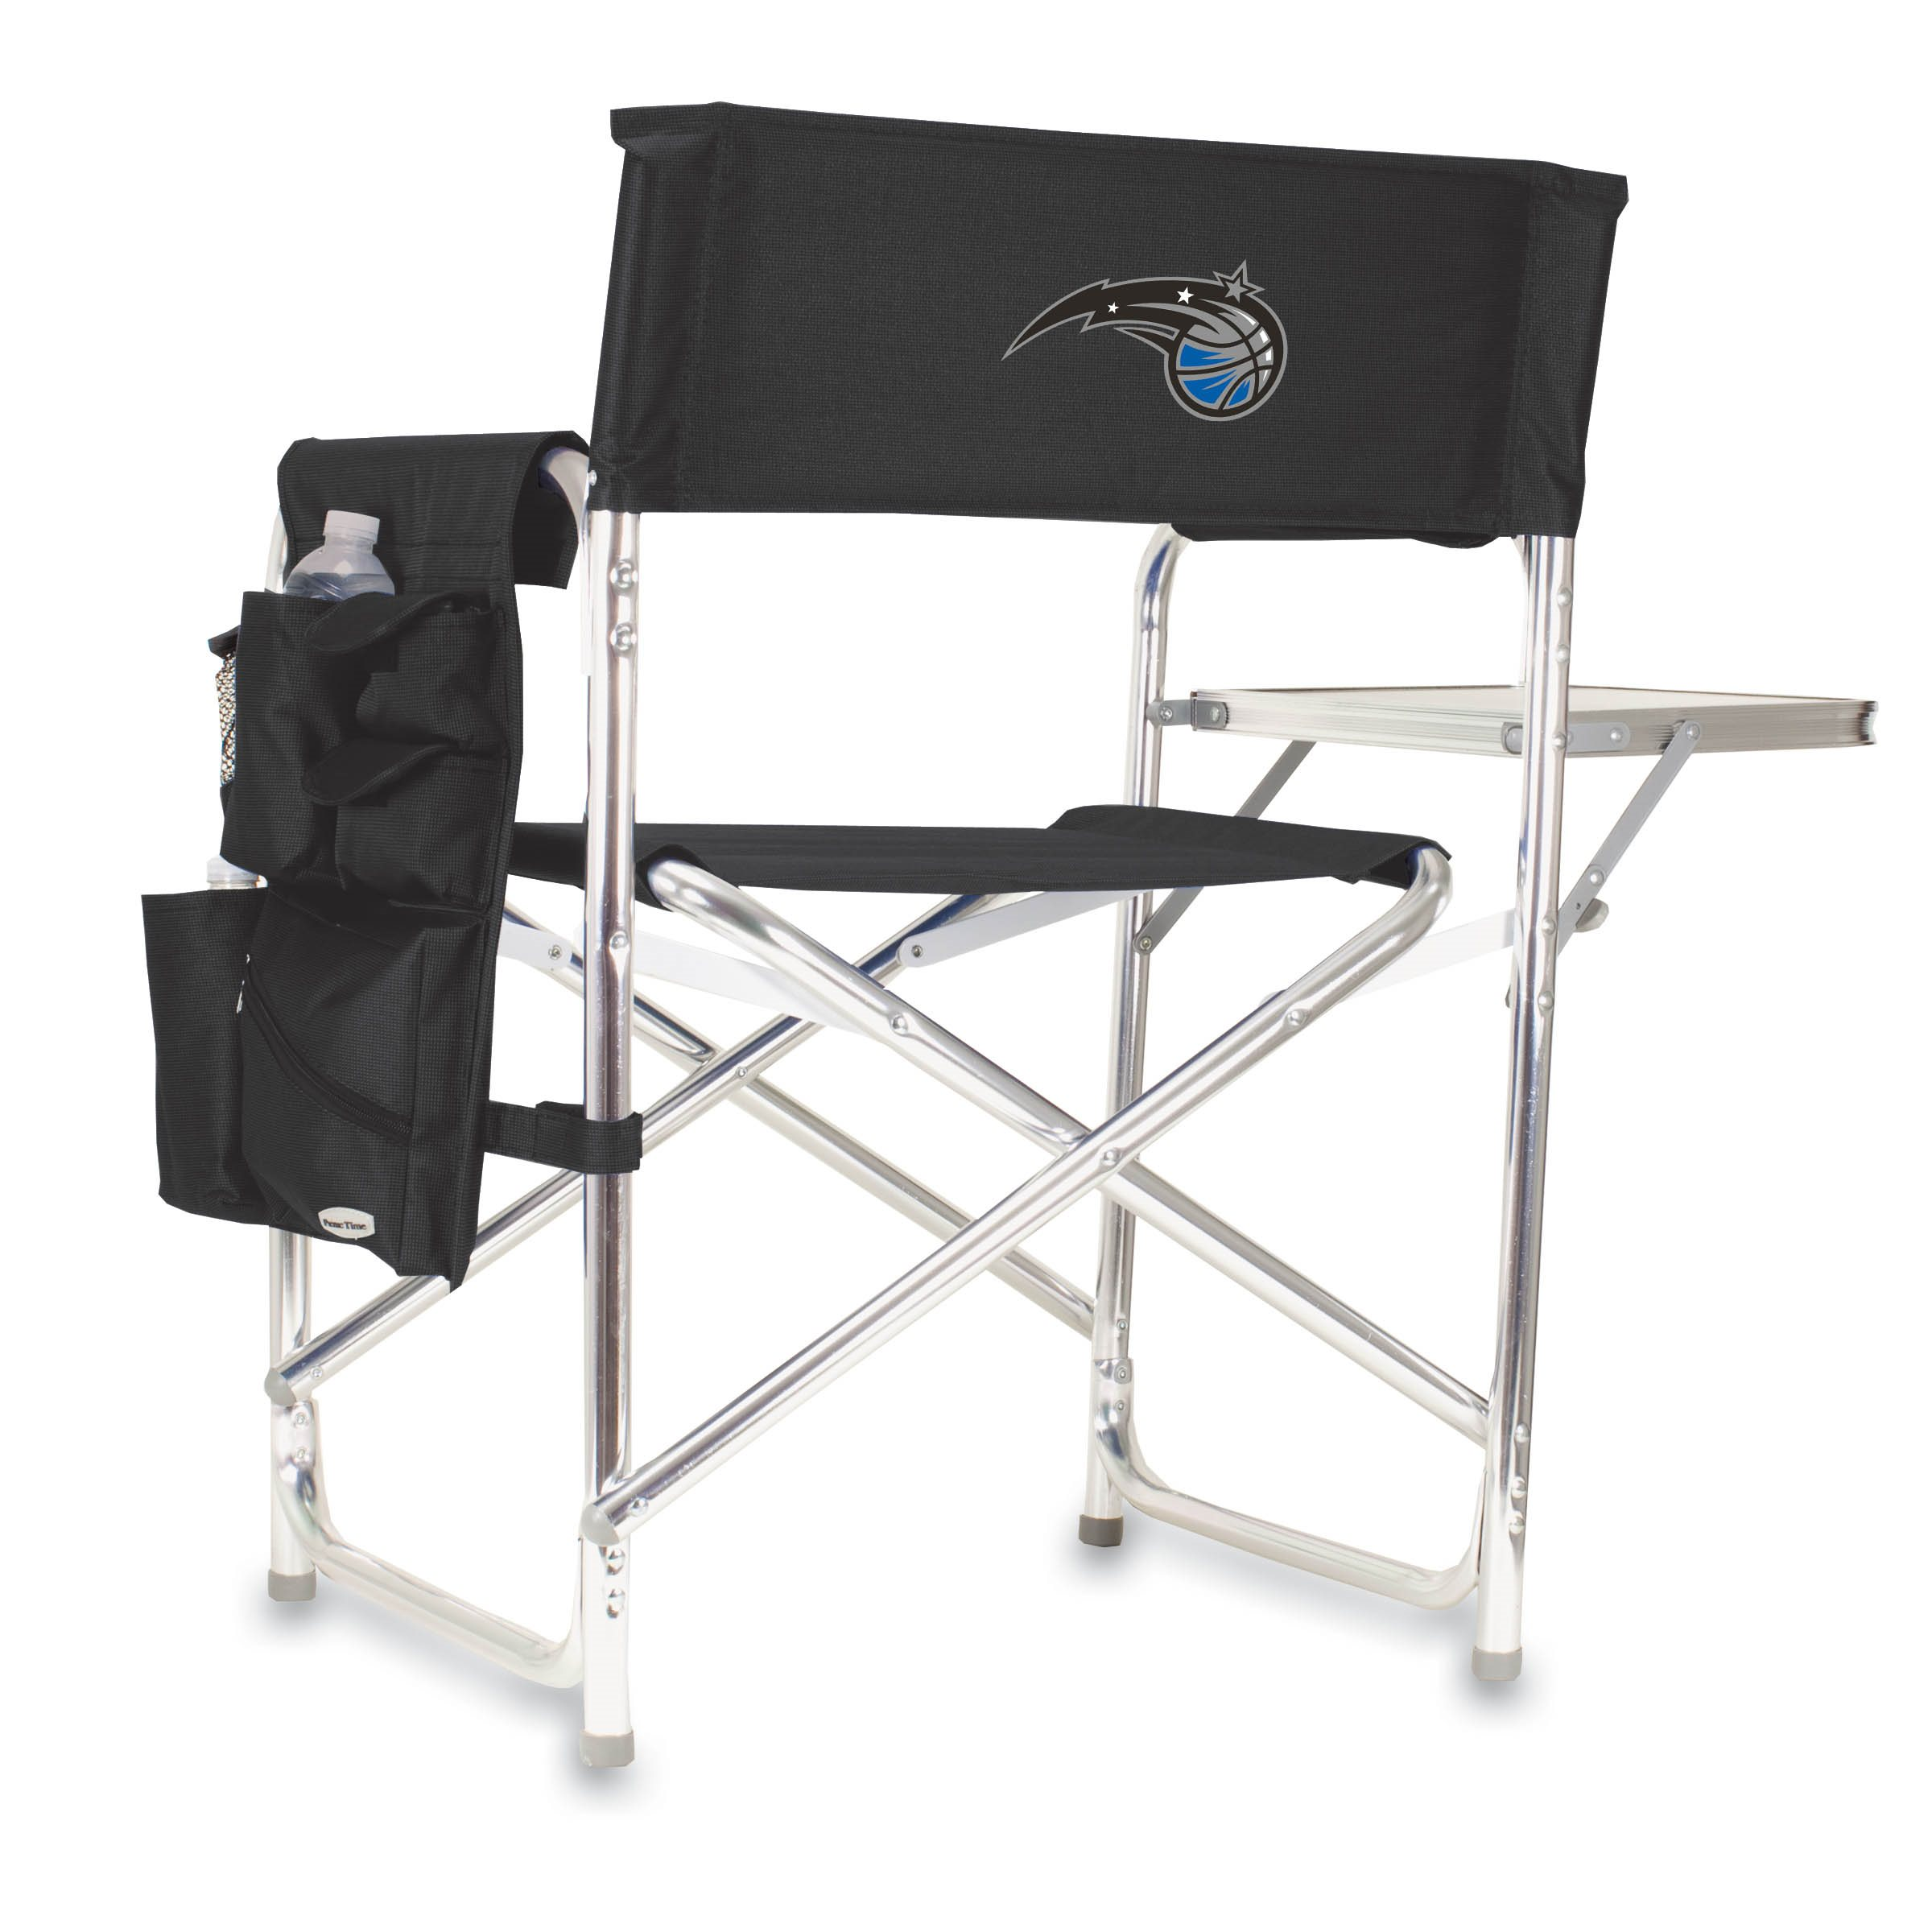 Picnic Time Nba Sports Chair Orlando Magic